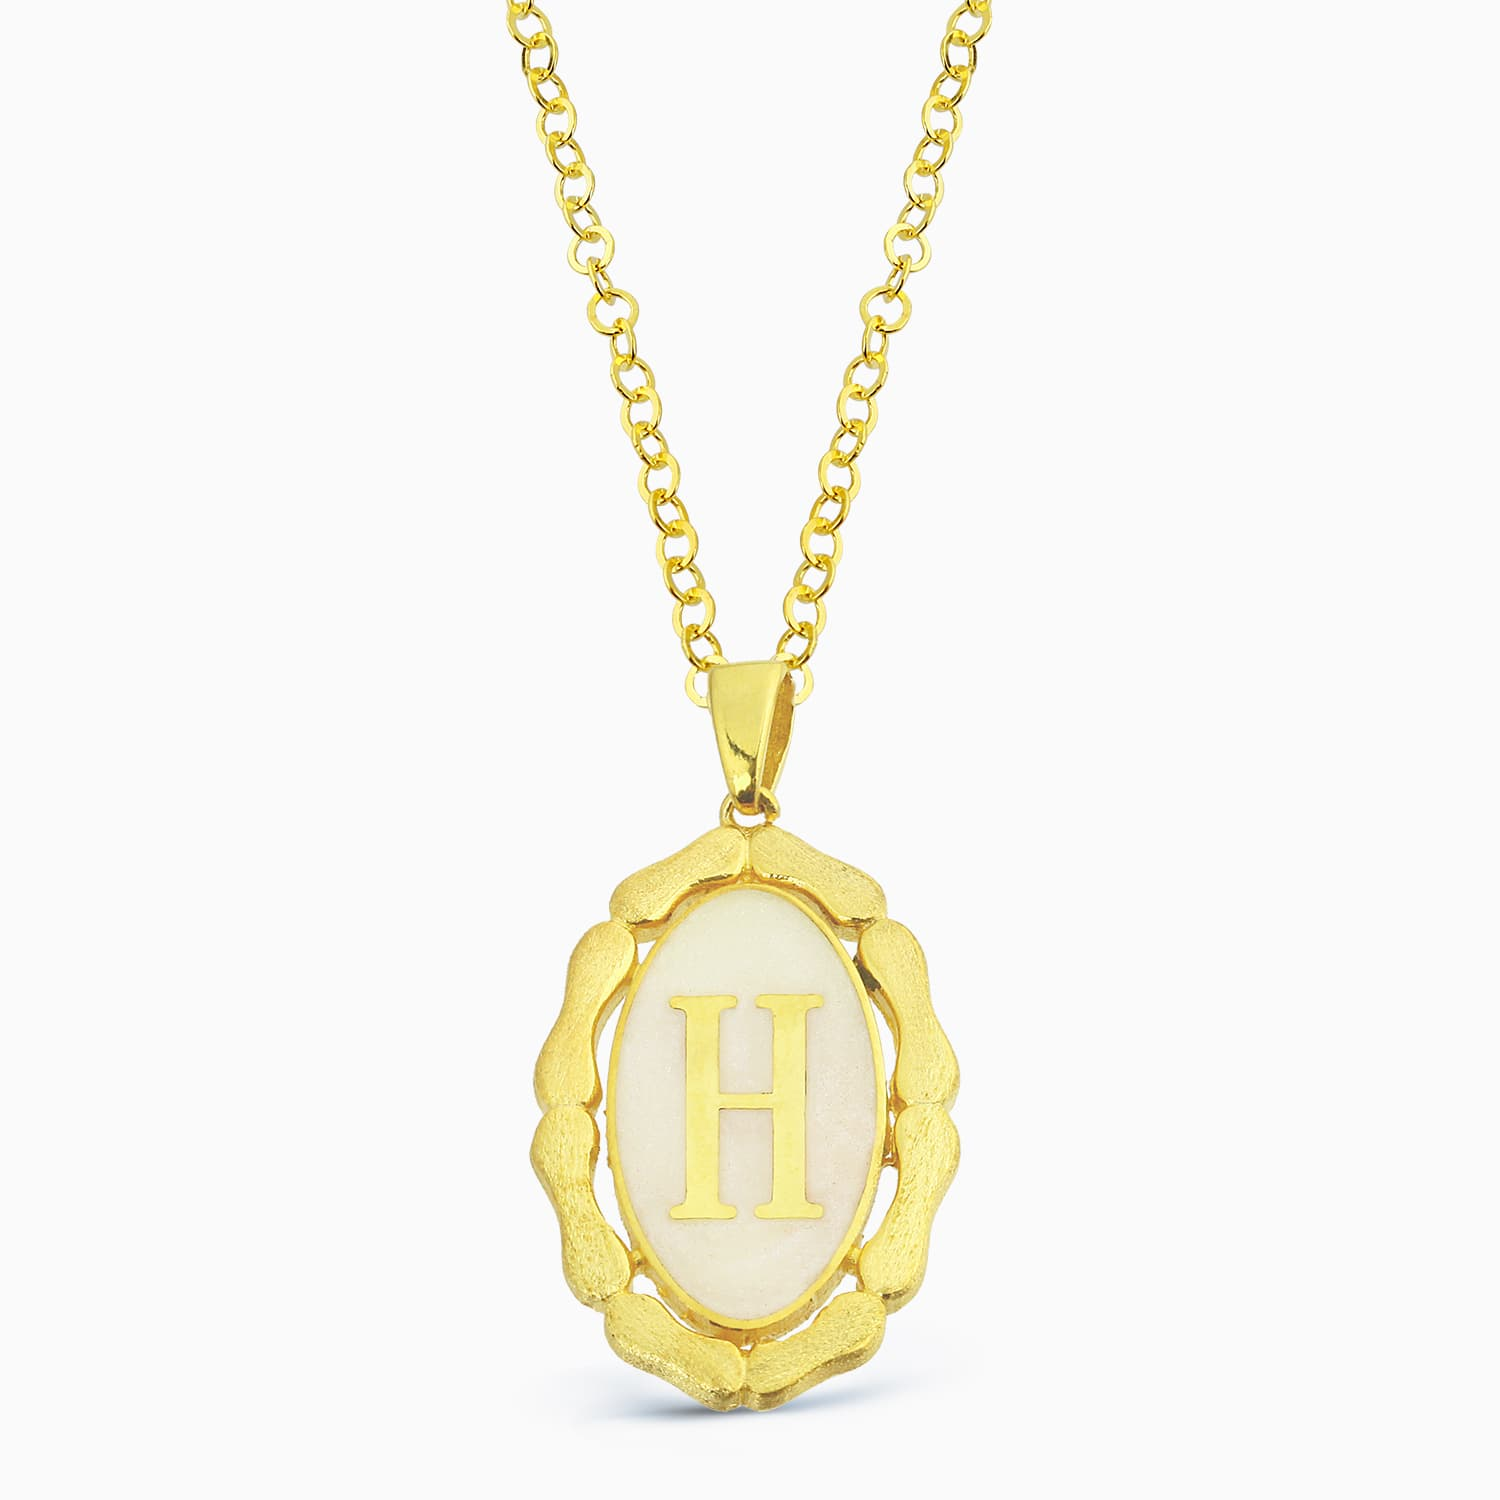 LETTER H MINNED NECKLACE